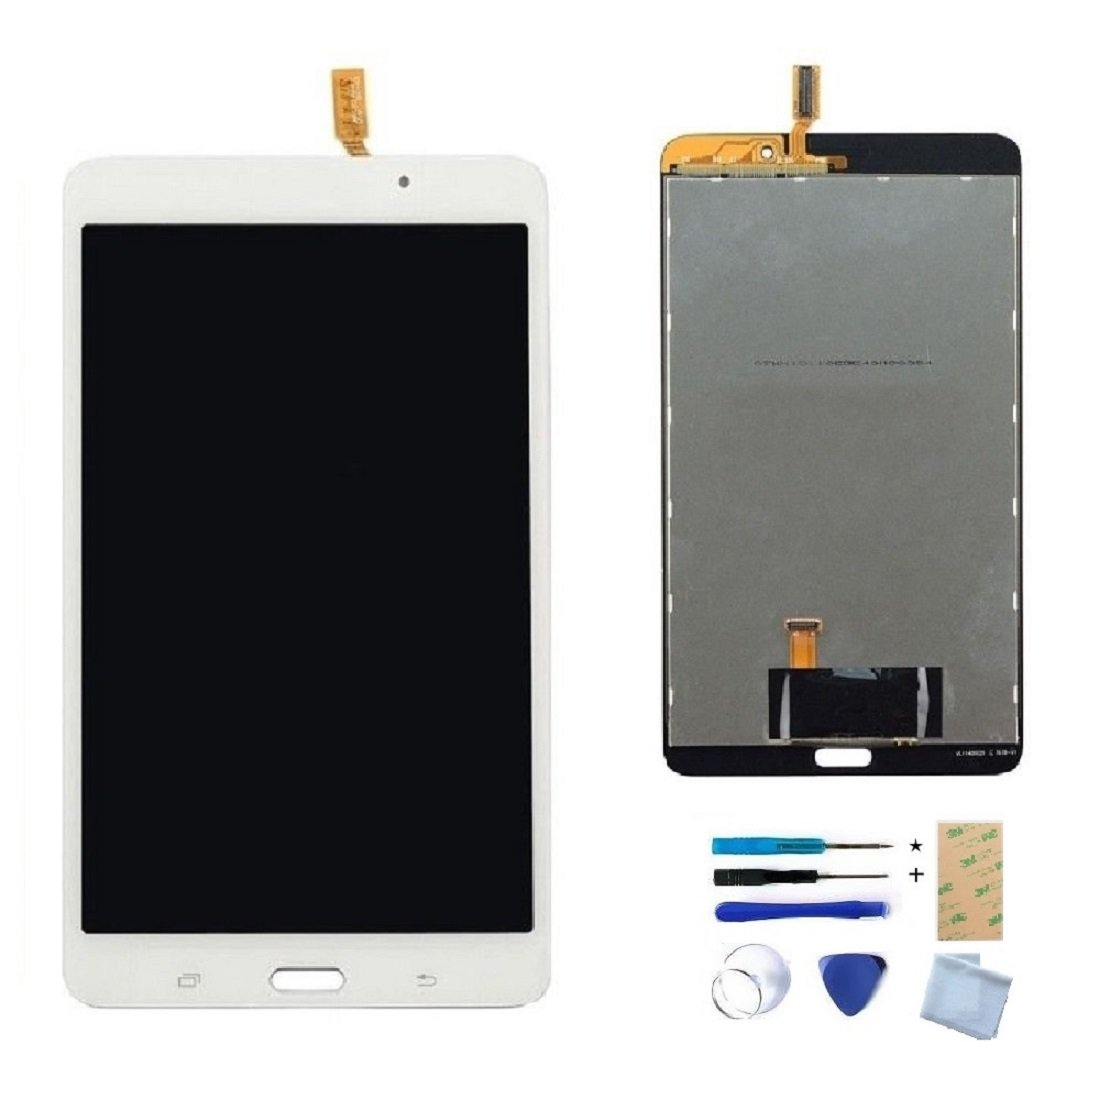 White LCD Display Touch Screen Digitizer Assembly Replacement Part for Samsung Galaxy TAB 4 7.0'' T230 T230NY T230NU T230NT WIFI with Tools(NO Earpiece Hole)